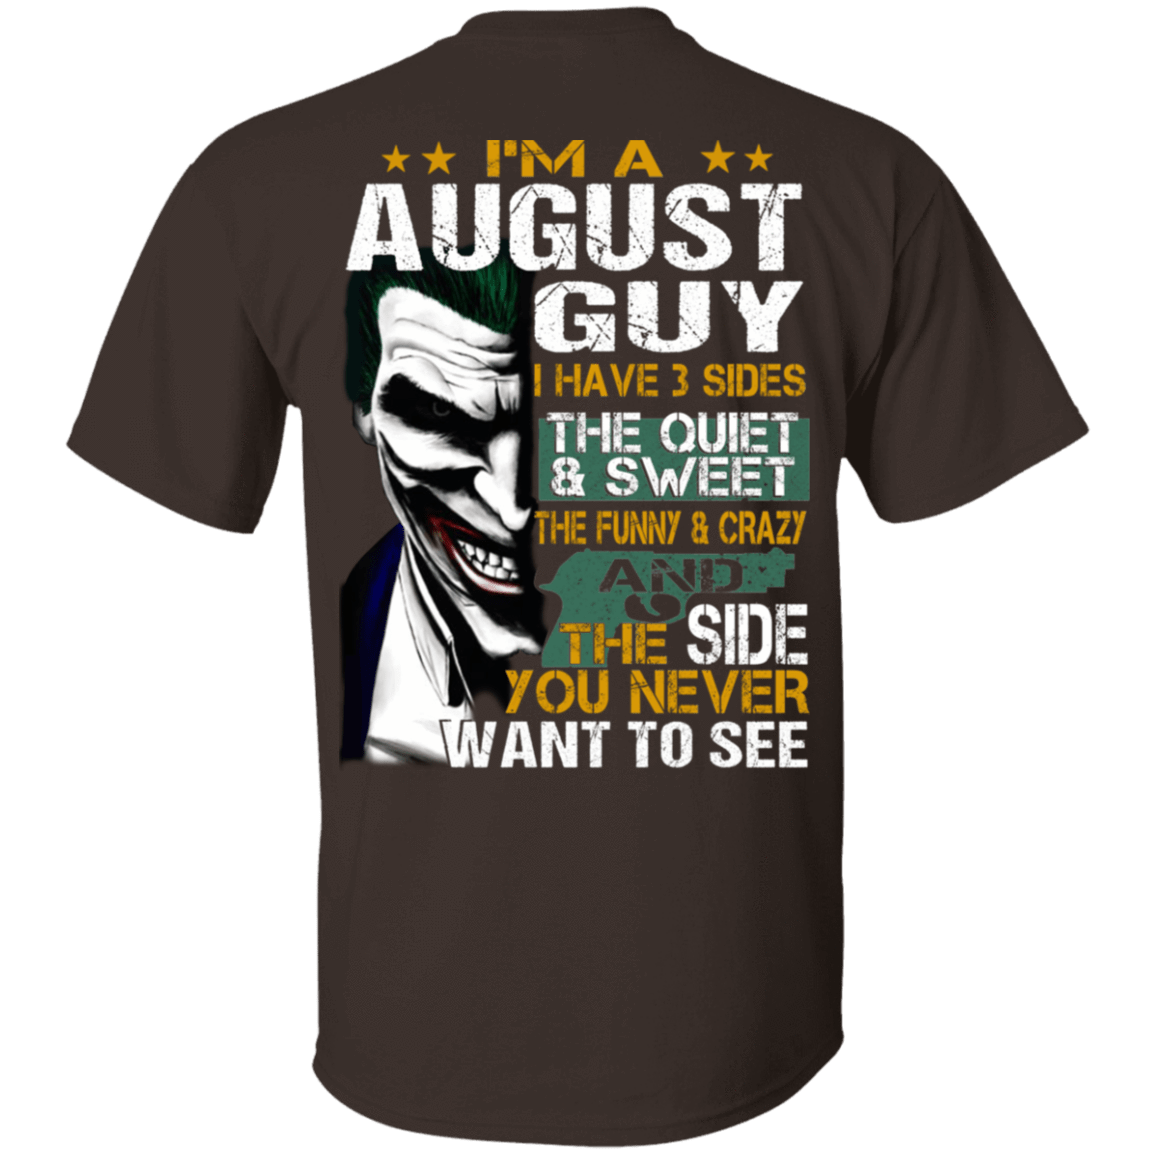 Joker August Guy Have 3 Sides The Quiet And Sweet T-Shirts, Hoodies 1049-9956-81647605-48152 - Tee Ript